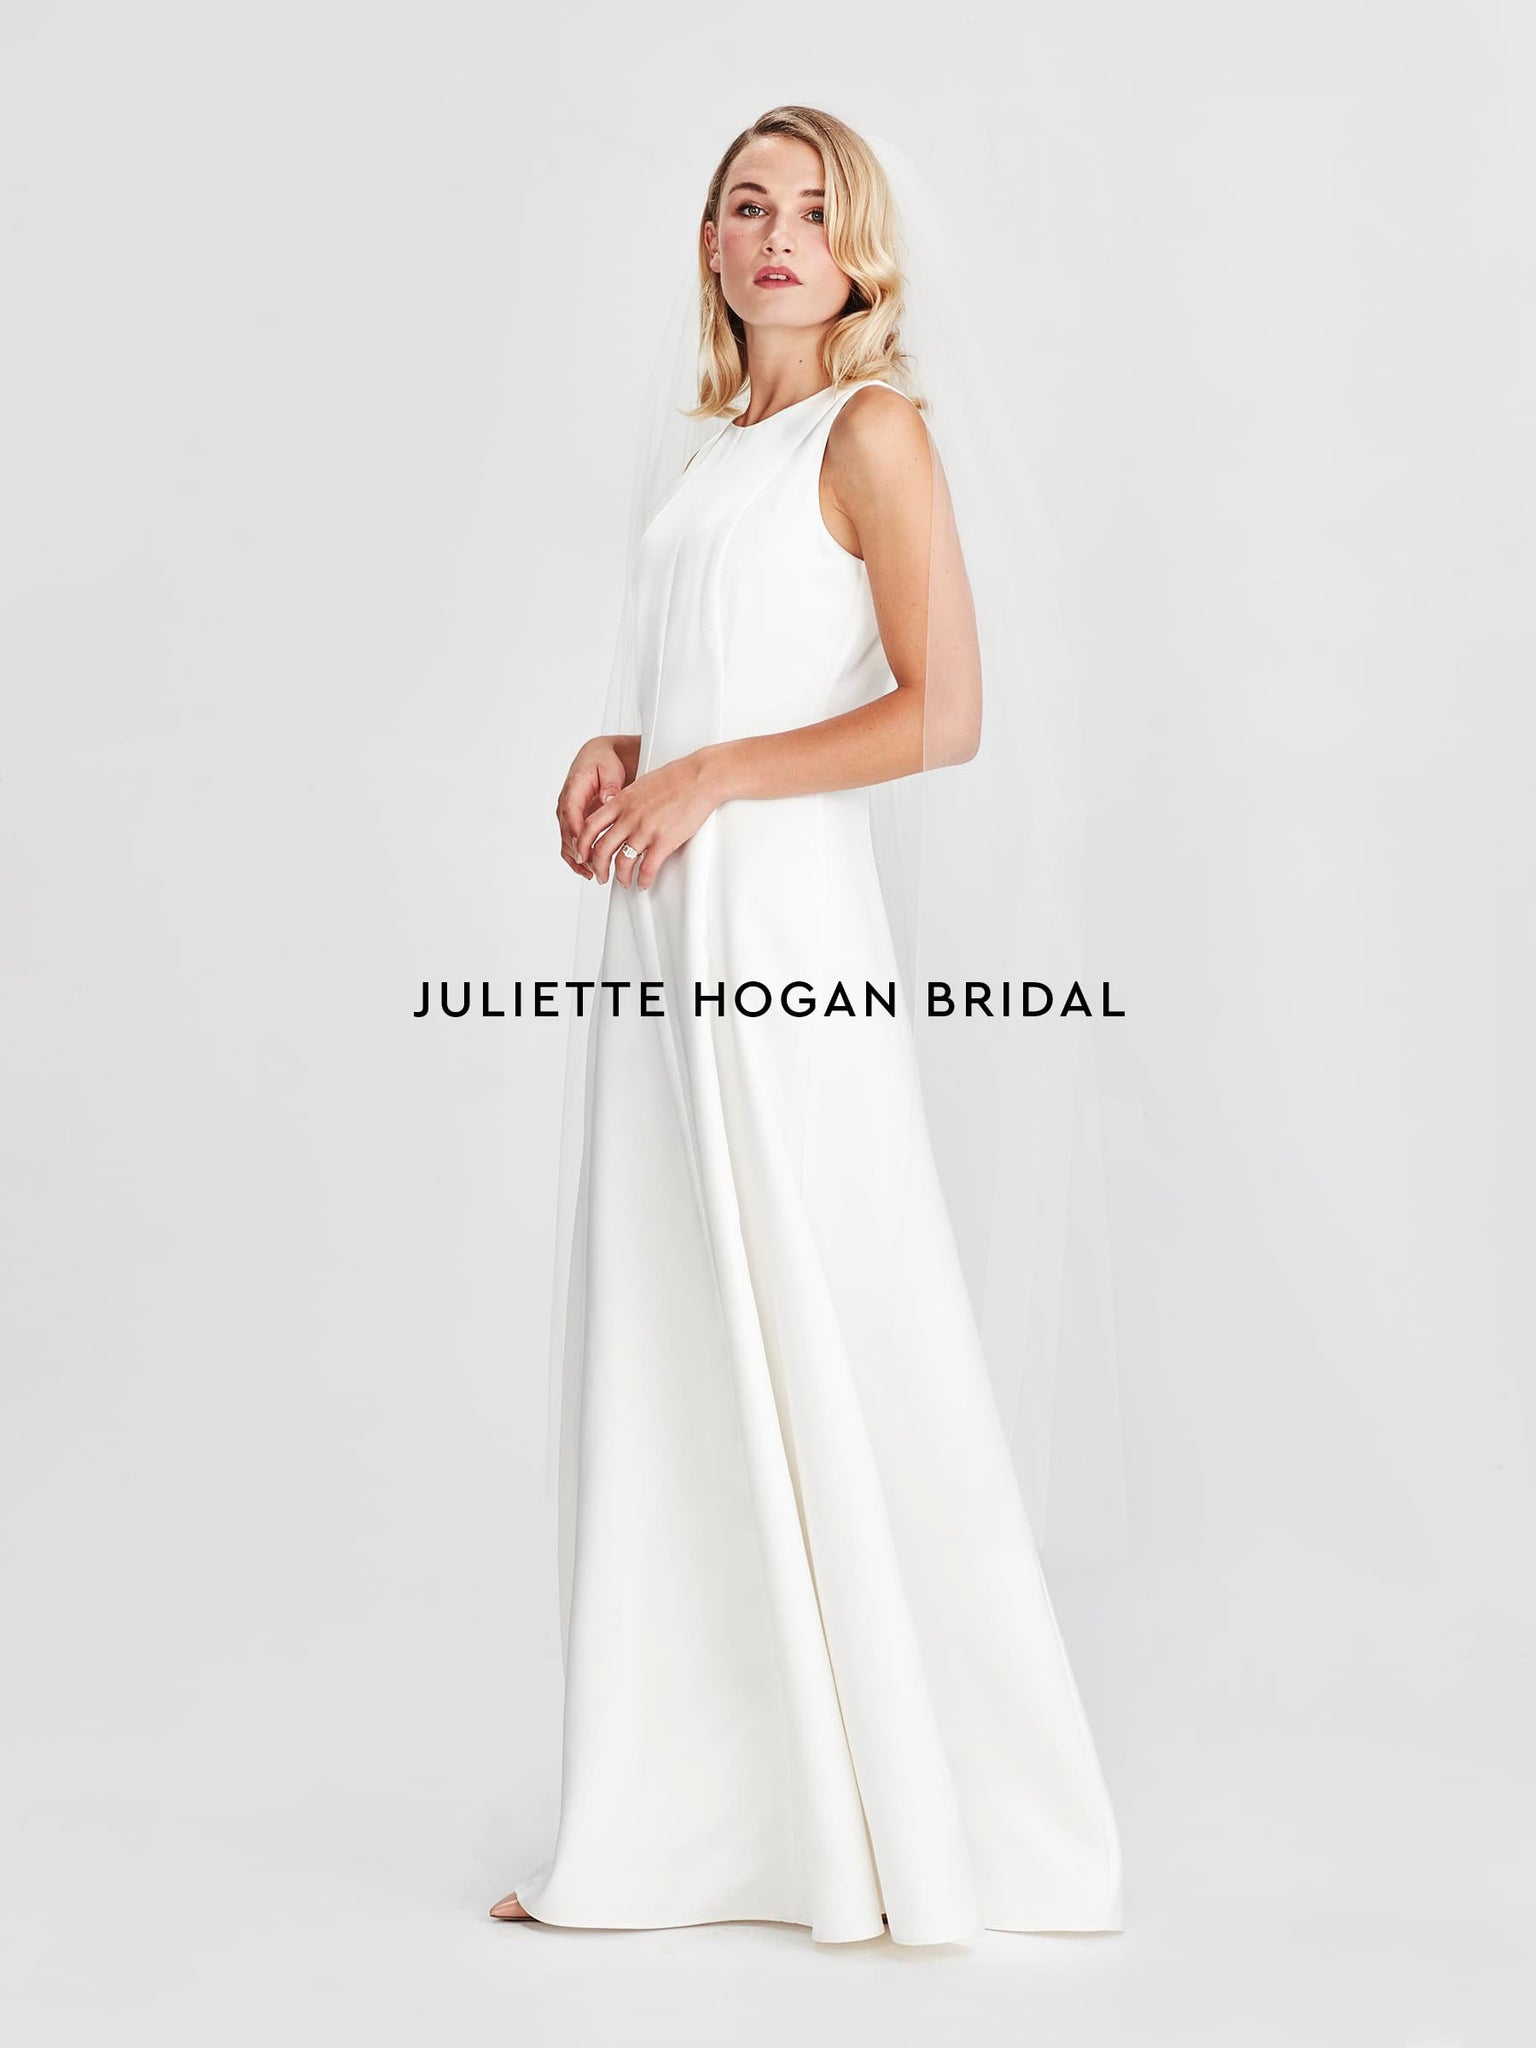 Juliette Hogan Bridal